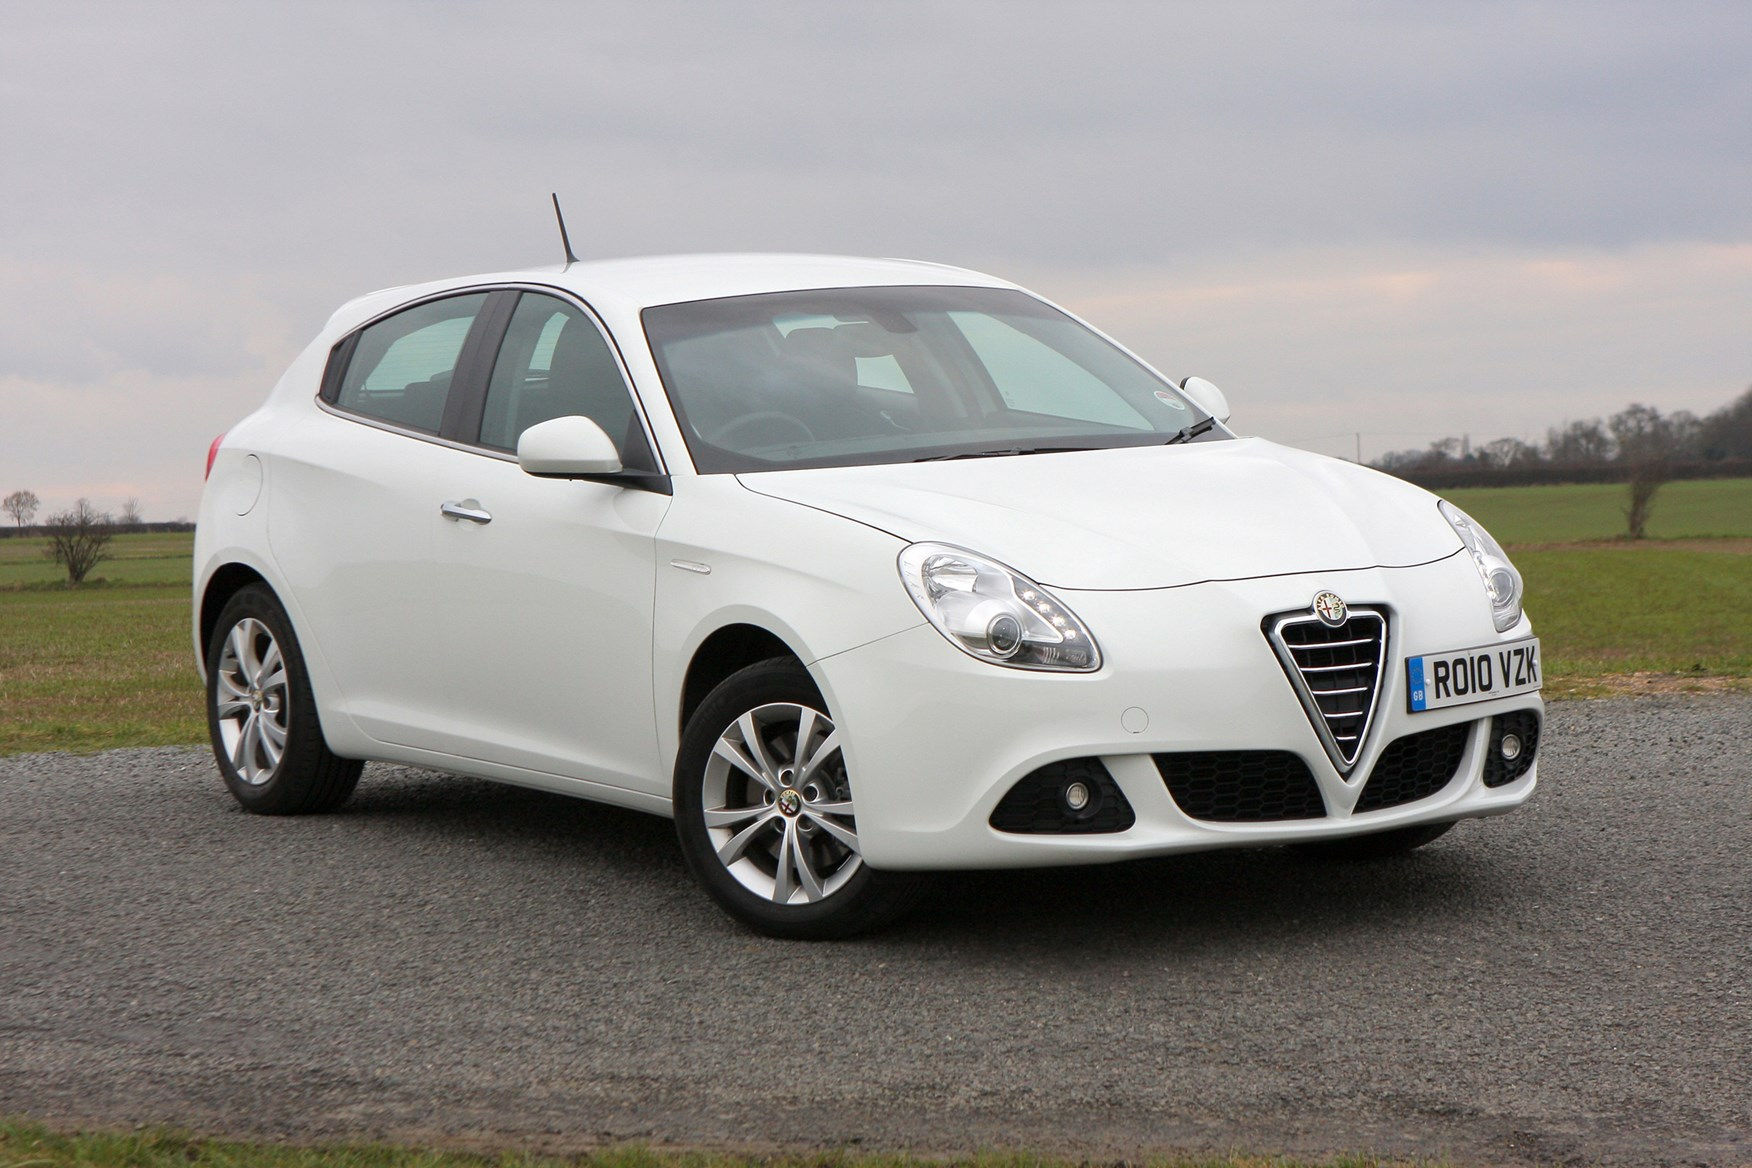 alfa romeo giulietta hatchback review 2010 parkers. Black Bedroom Furniture Sets. Home Design Ideas